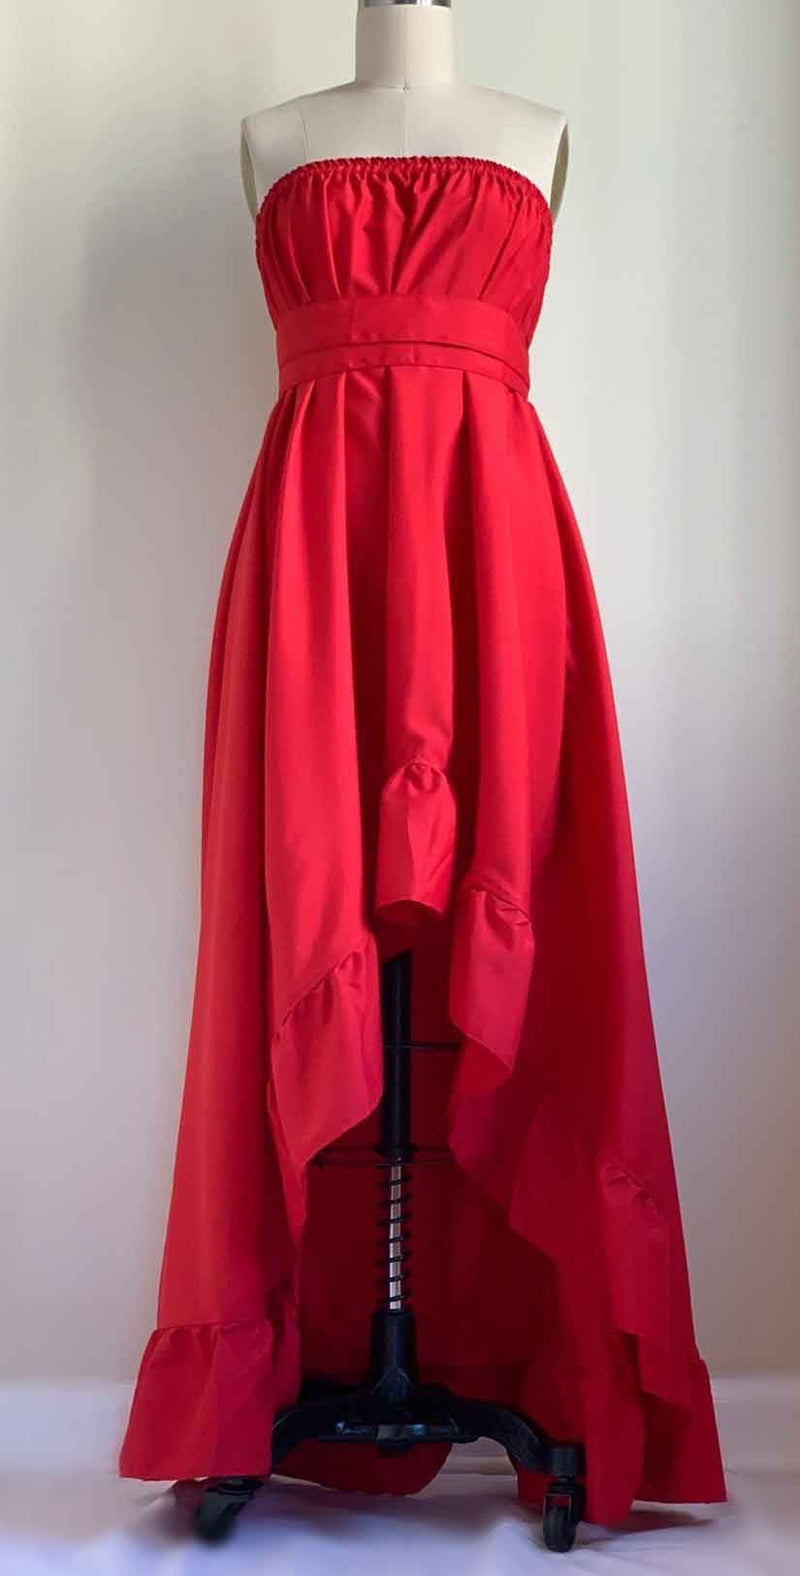 Camaroha Sutra Goddess Dress 5 Inch Ruffle in Red Hot  front